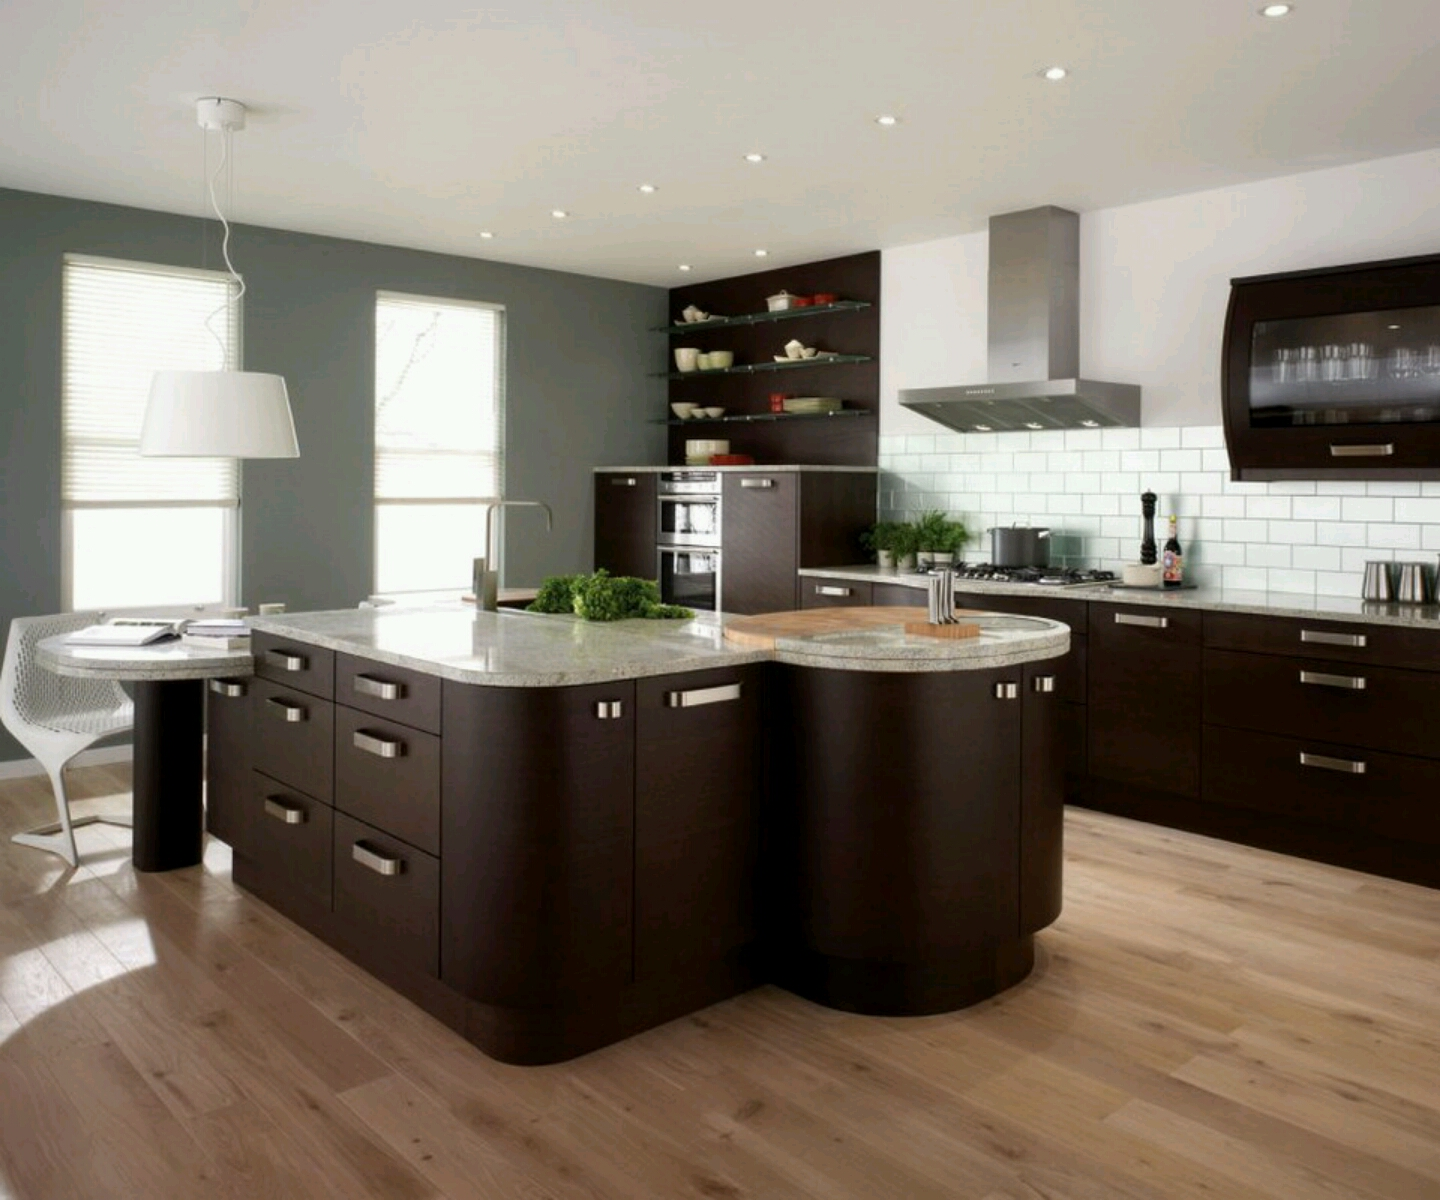 Modern home kitchen cabinet designs ideas new home designs for New kitchen designs 2012